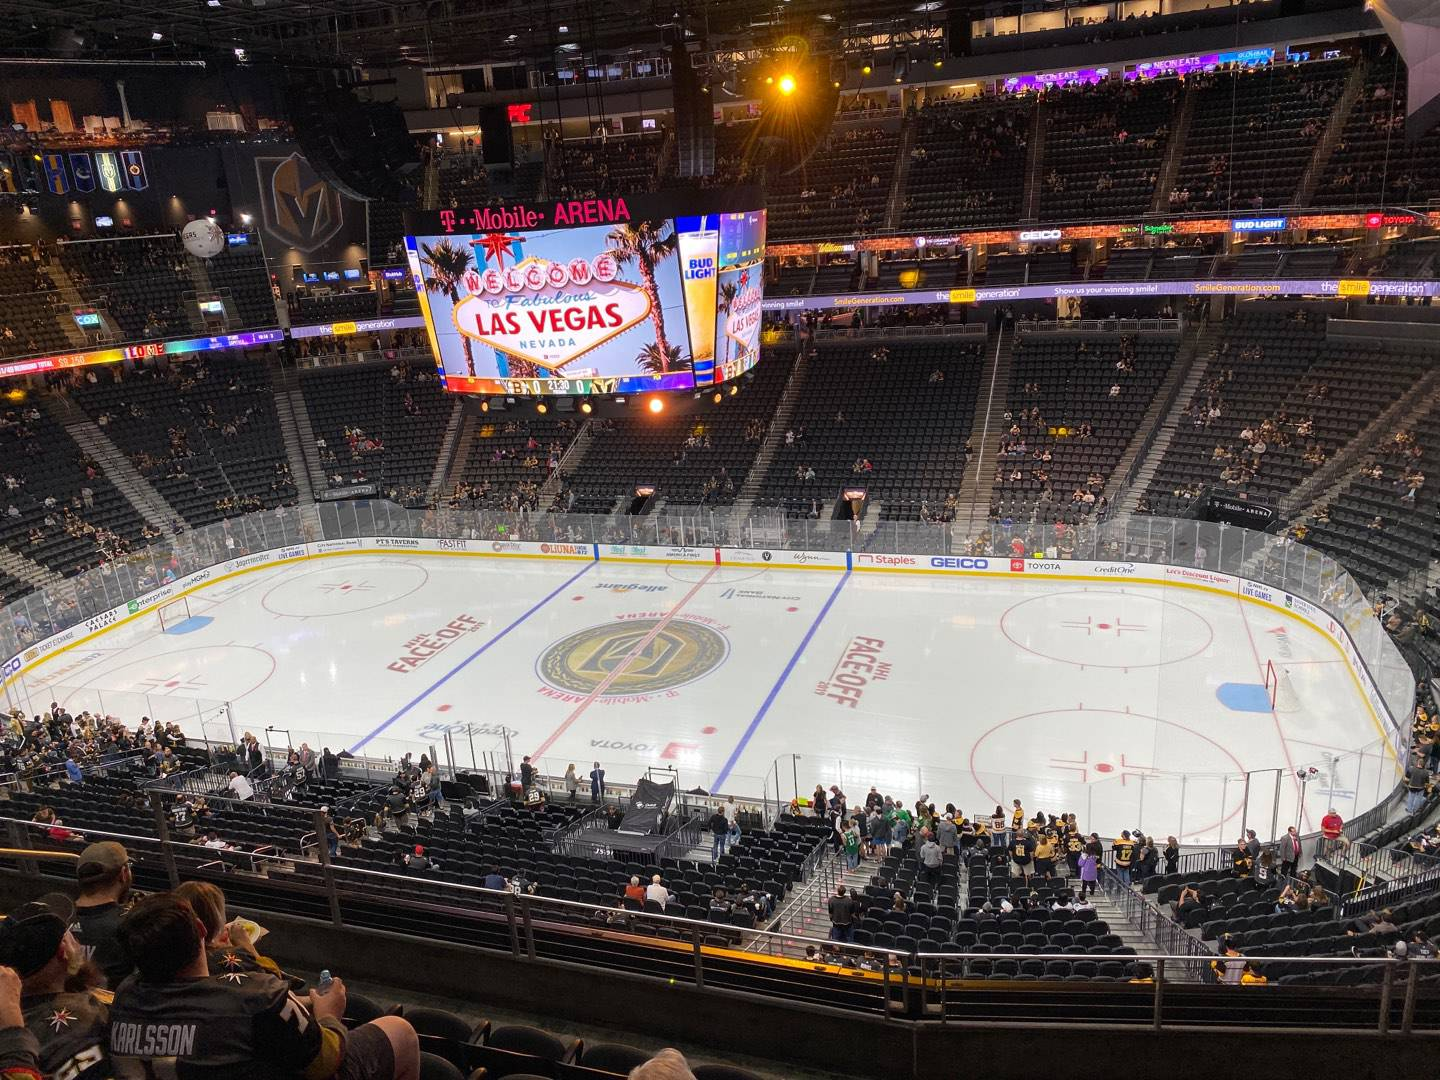 T-Mobile Arena Section 207 Row F Seat 8